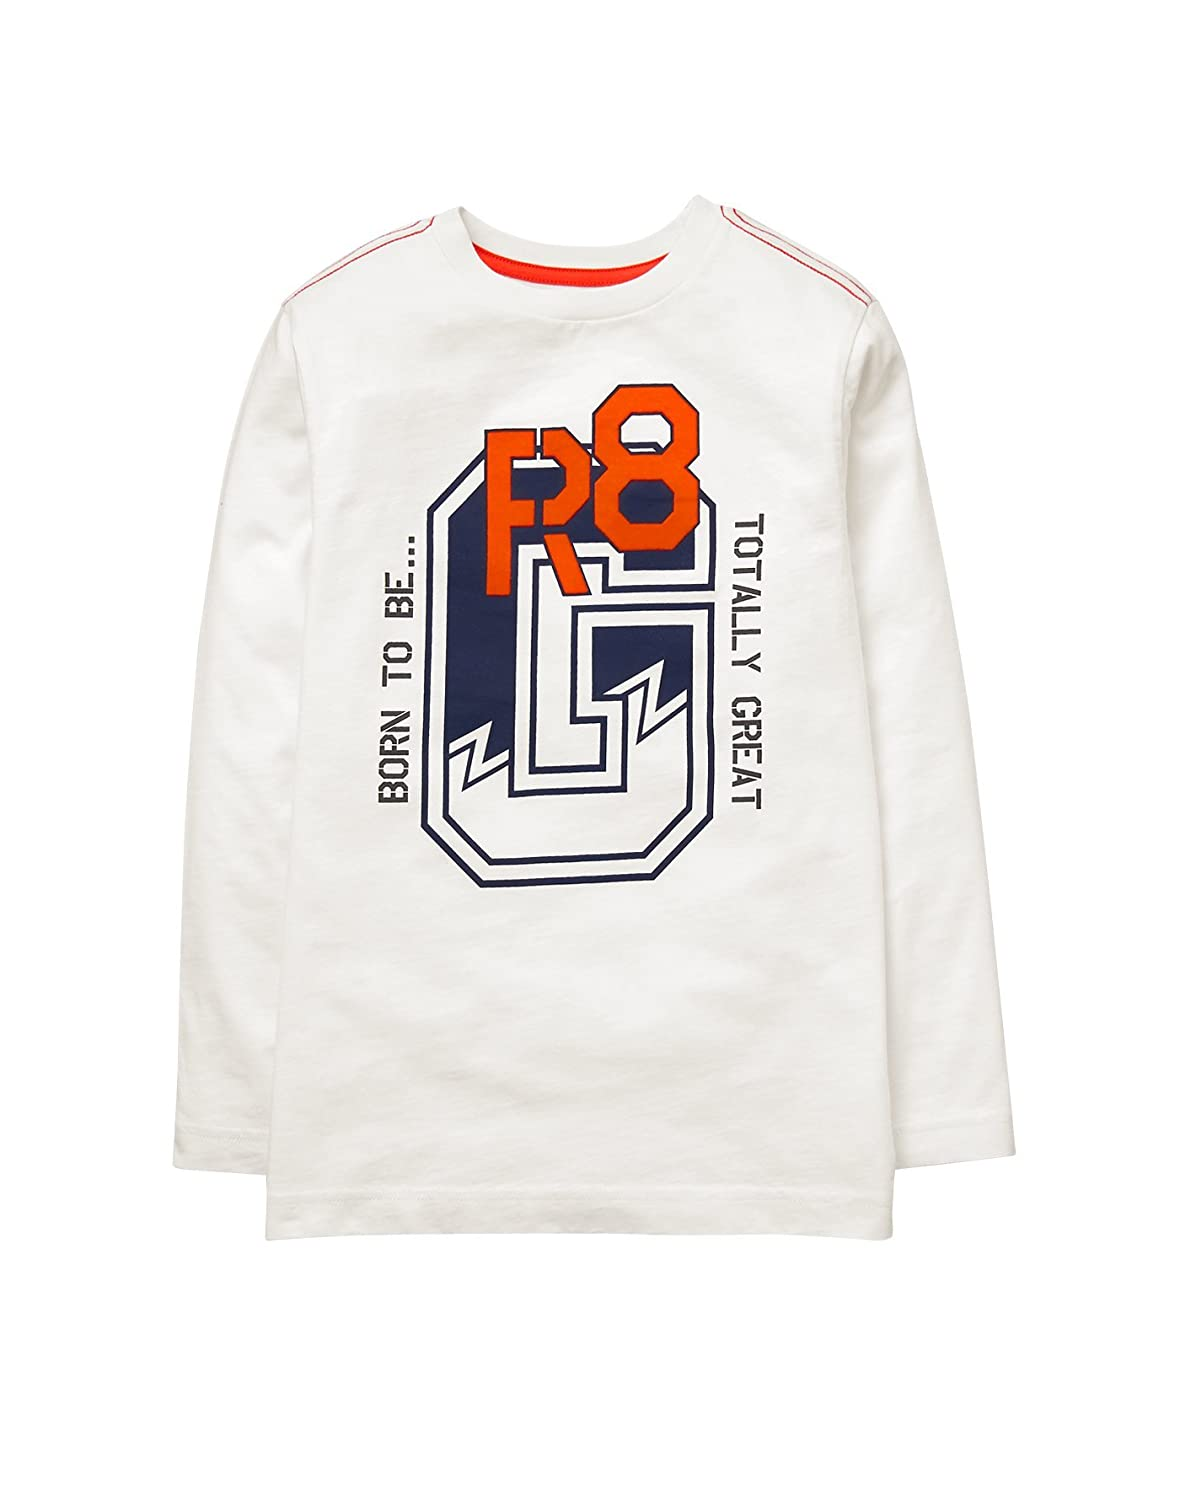 Crazy 8 Boys His Long-Sleeve Graphic Tee